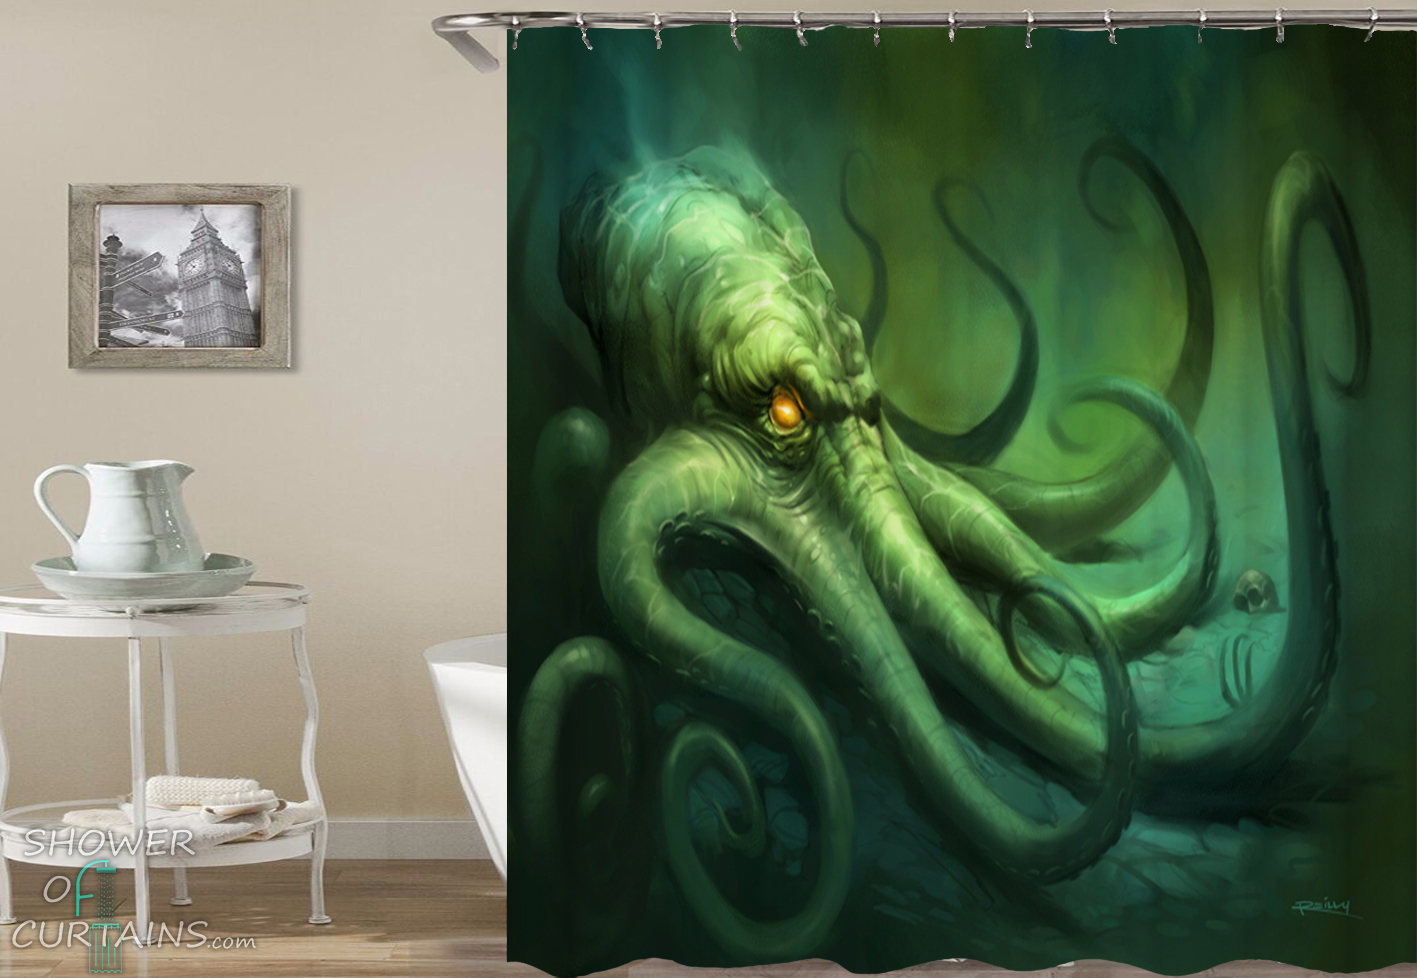 Terrifying Octopus Shower Curtain Hxtc0567 Sold By Shower Of Curtains